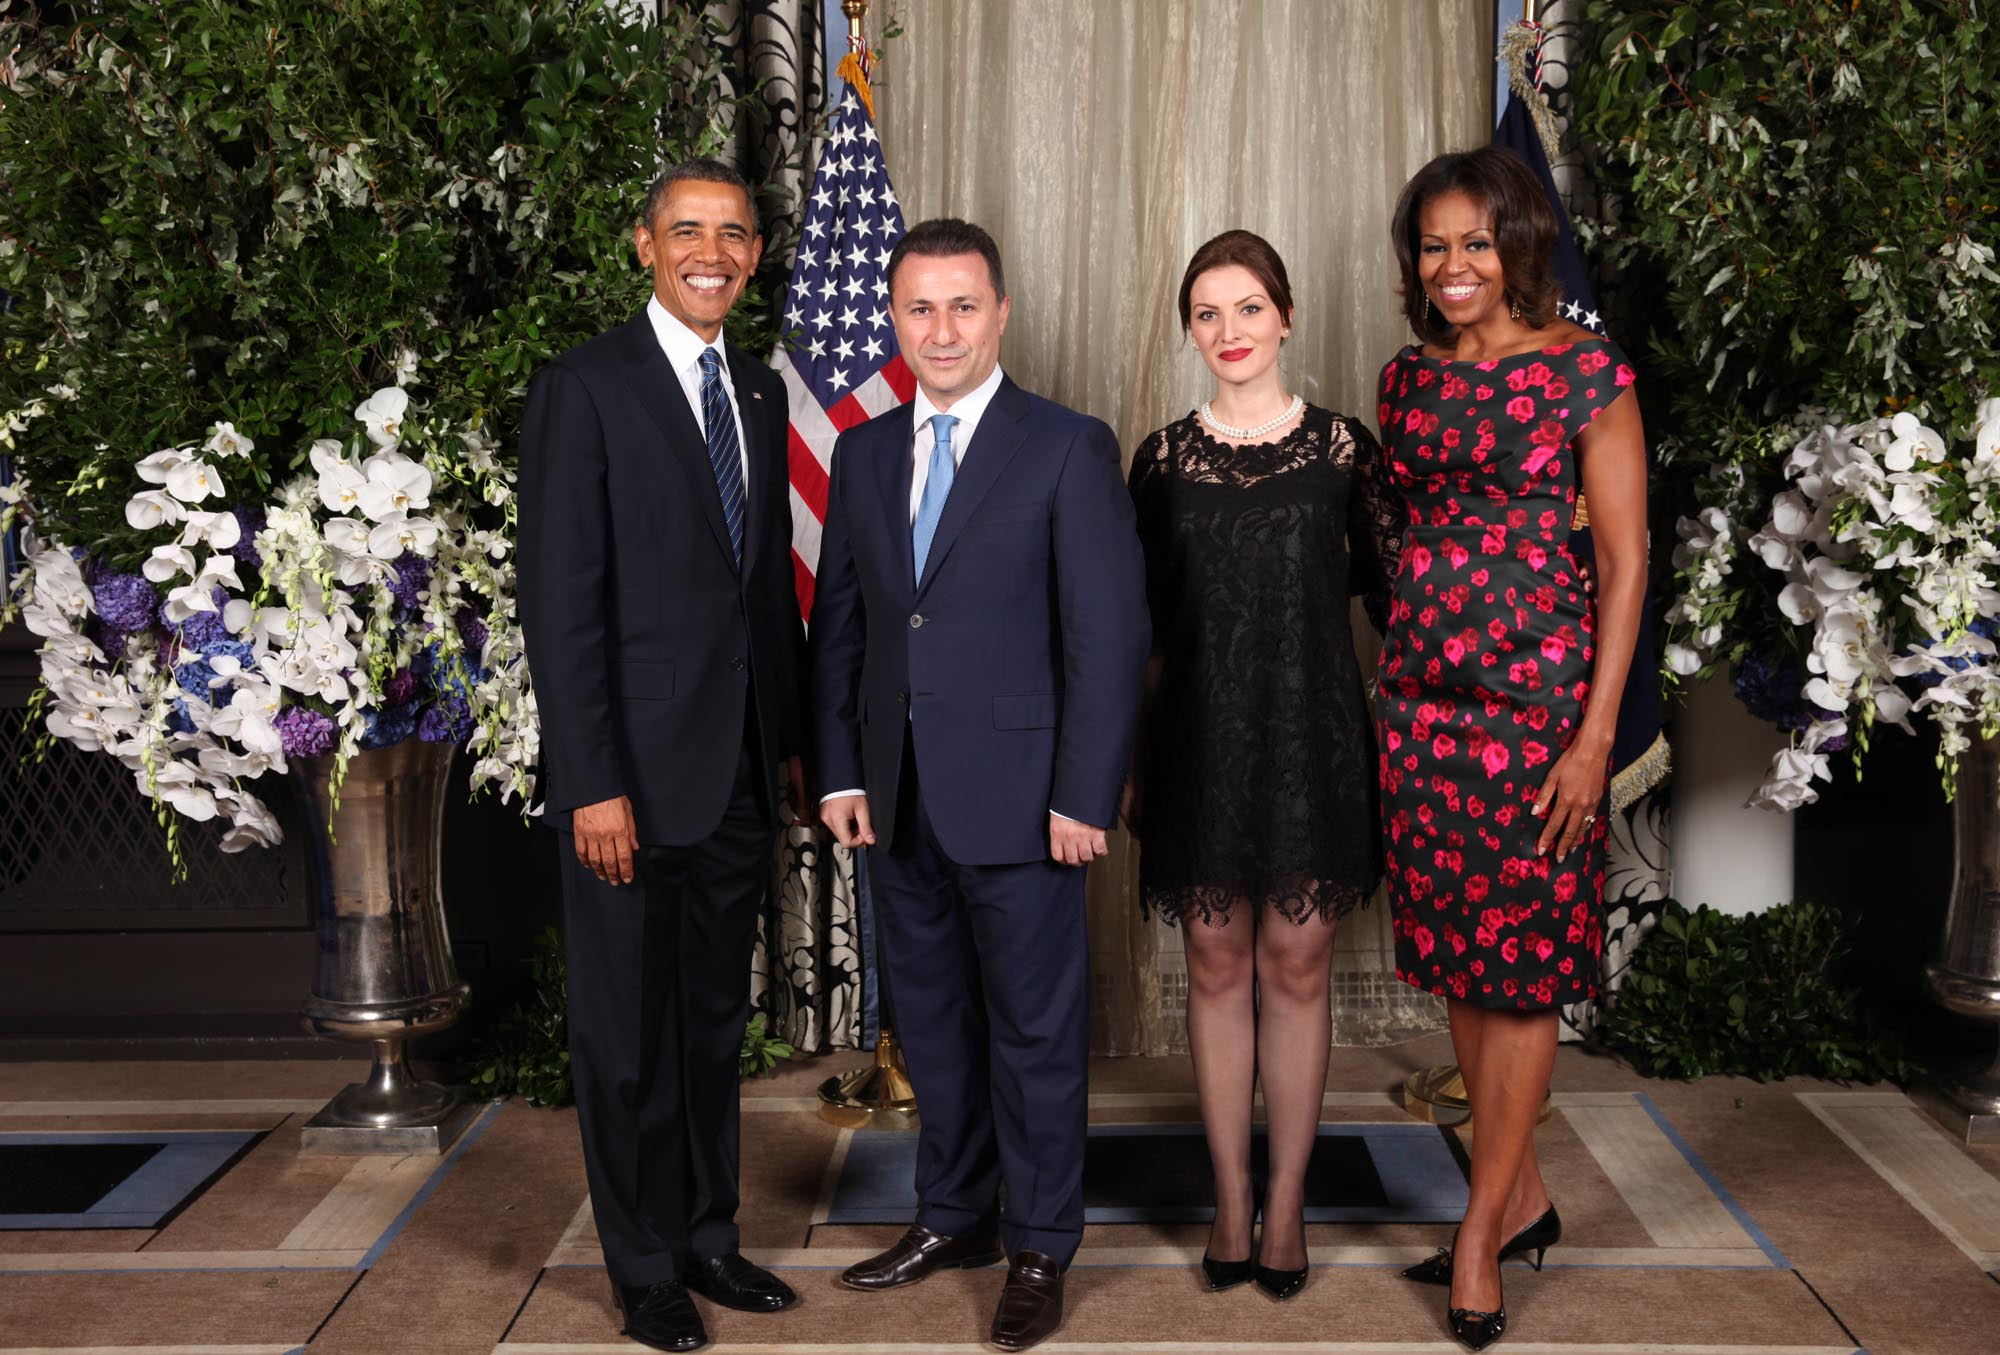 Prime Minister's office releases Gruevski's photo with Obama